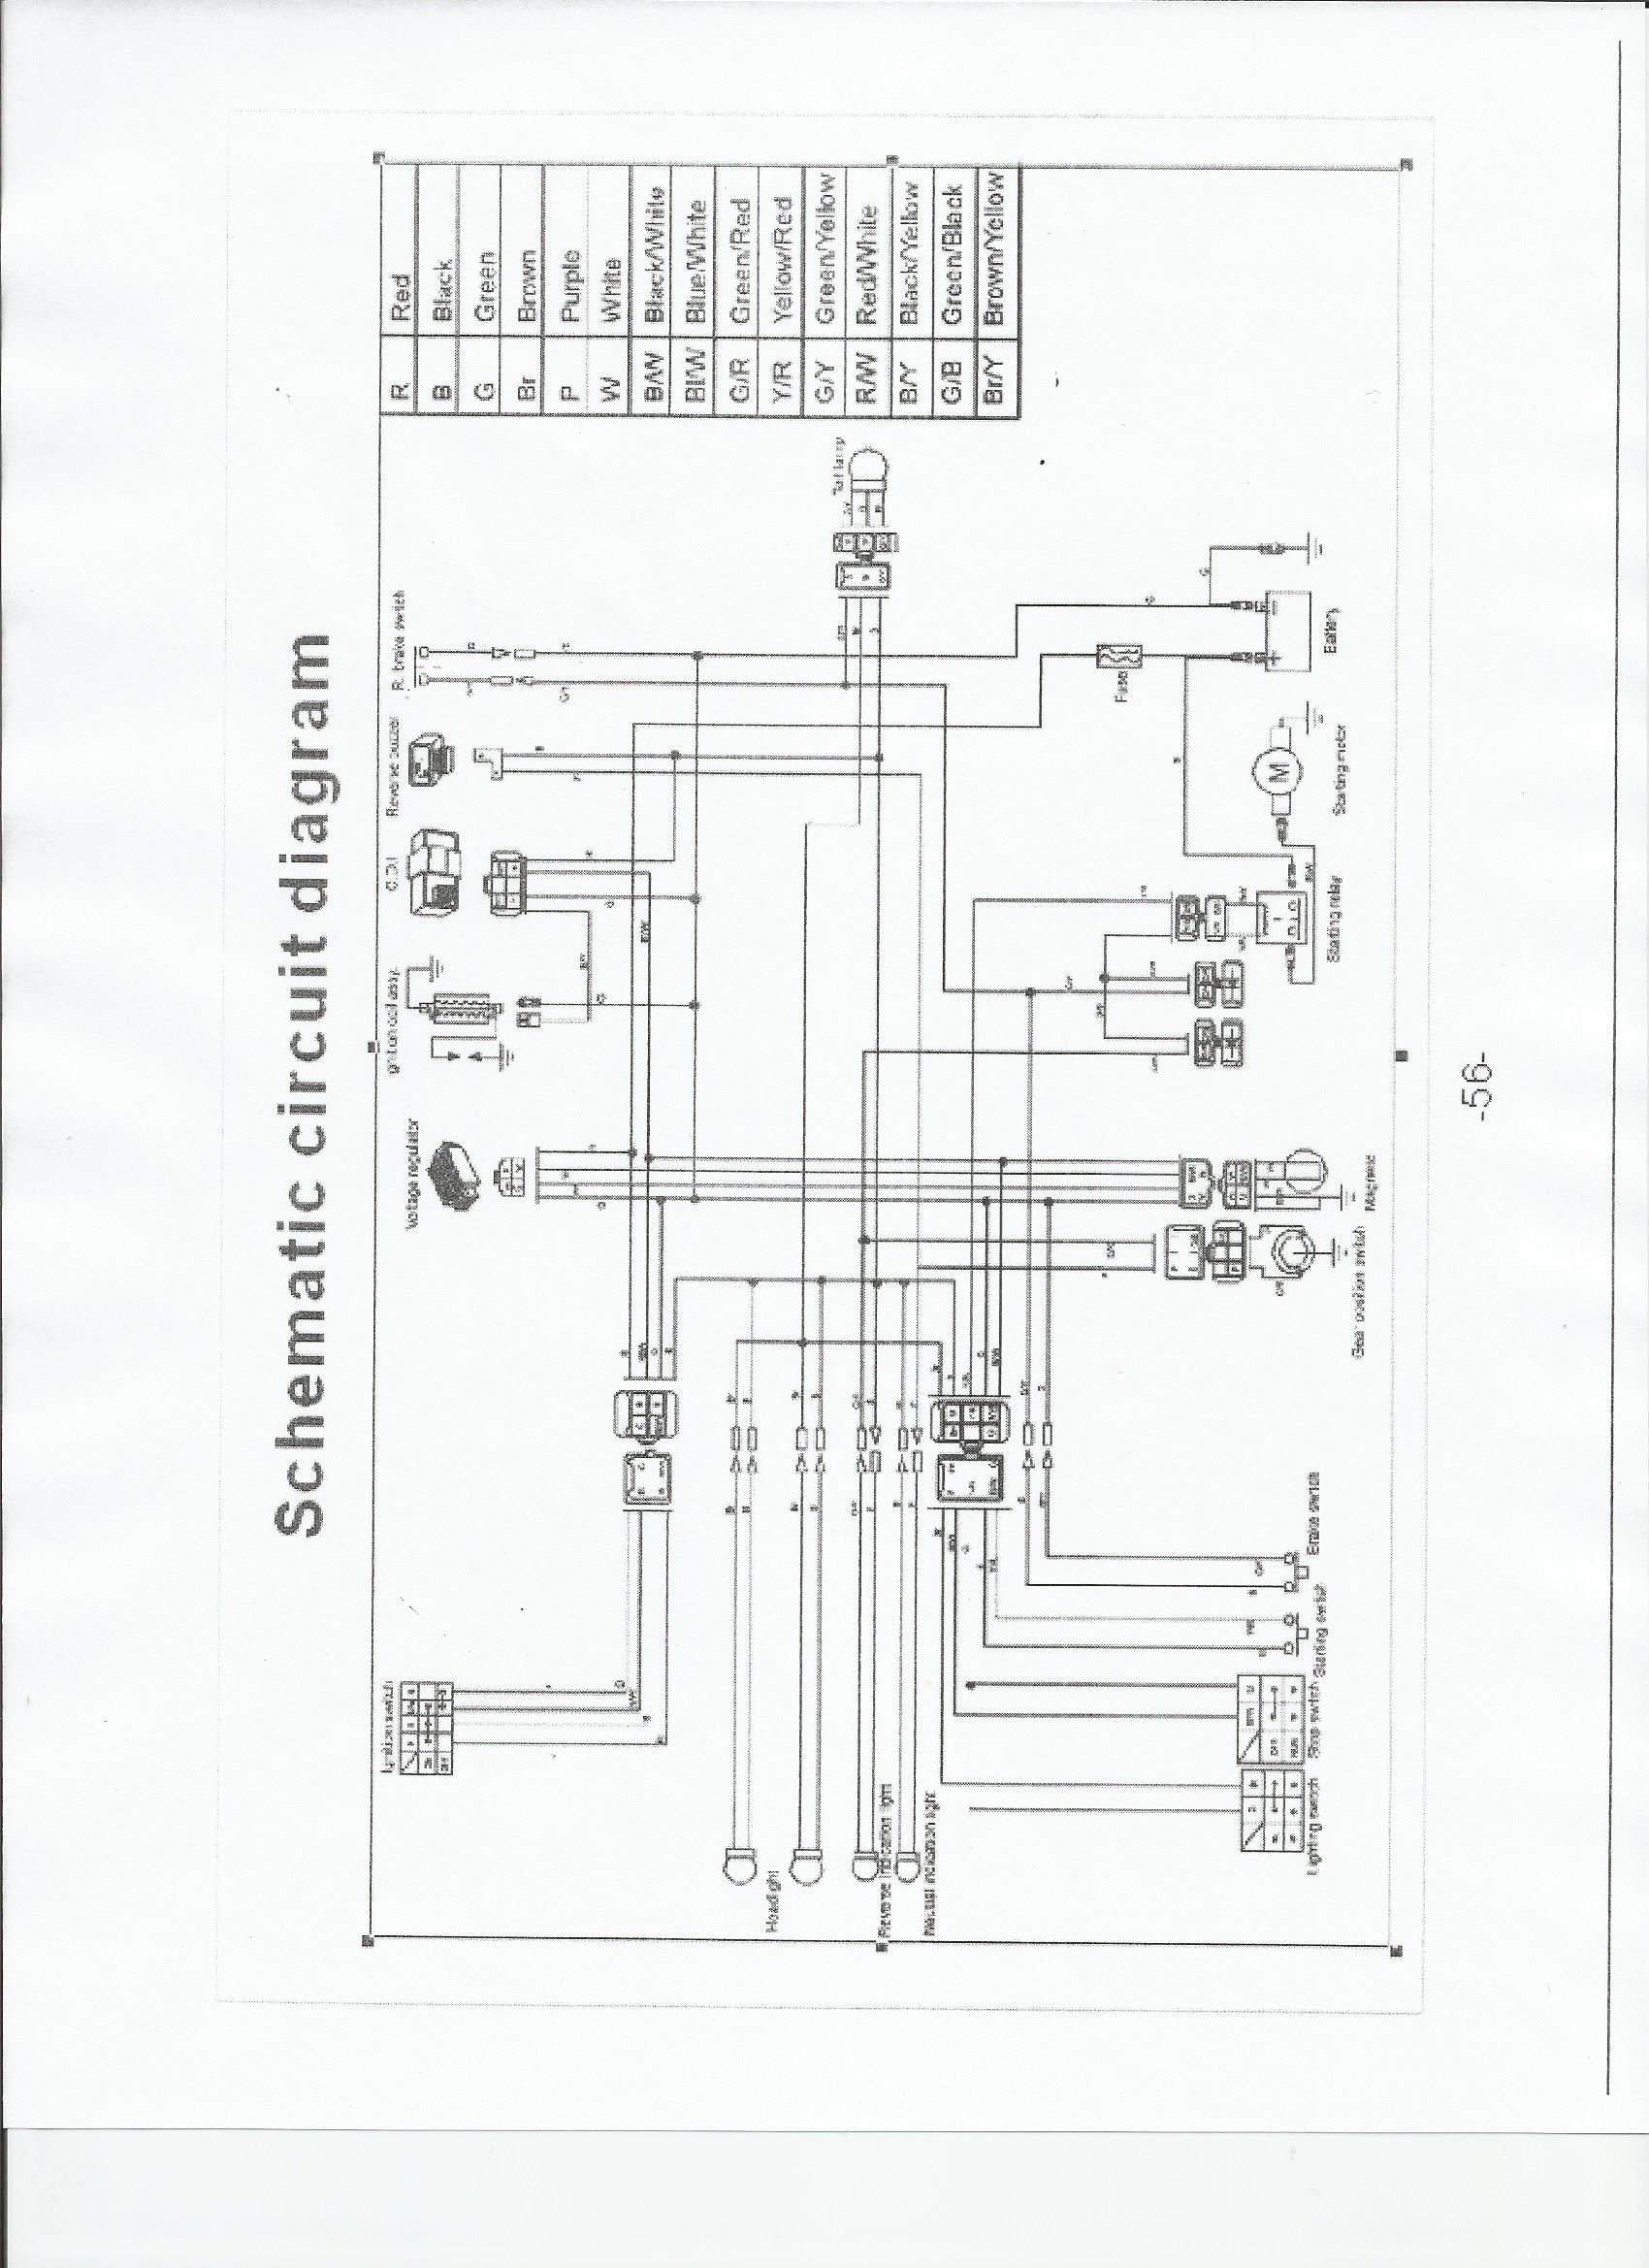 tao tao wiring schematic taotao ata110 b wiring diagram taotao 110cc wiring diagram wiring diagram for 110cc chinese atv at aneh.co